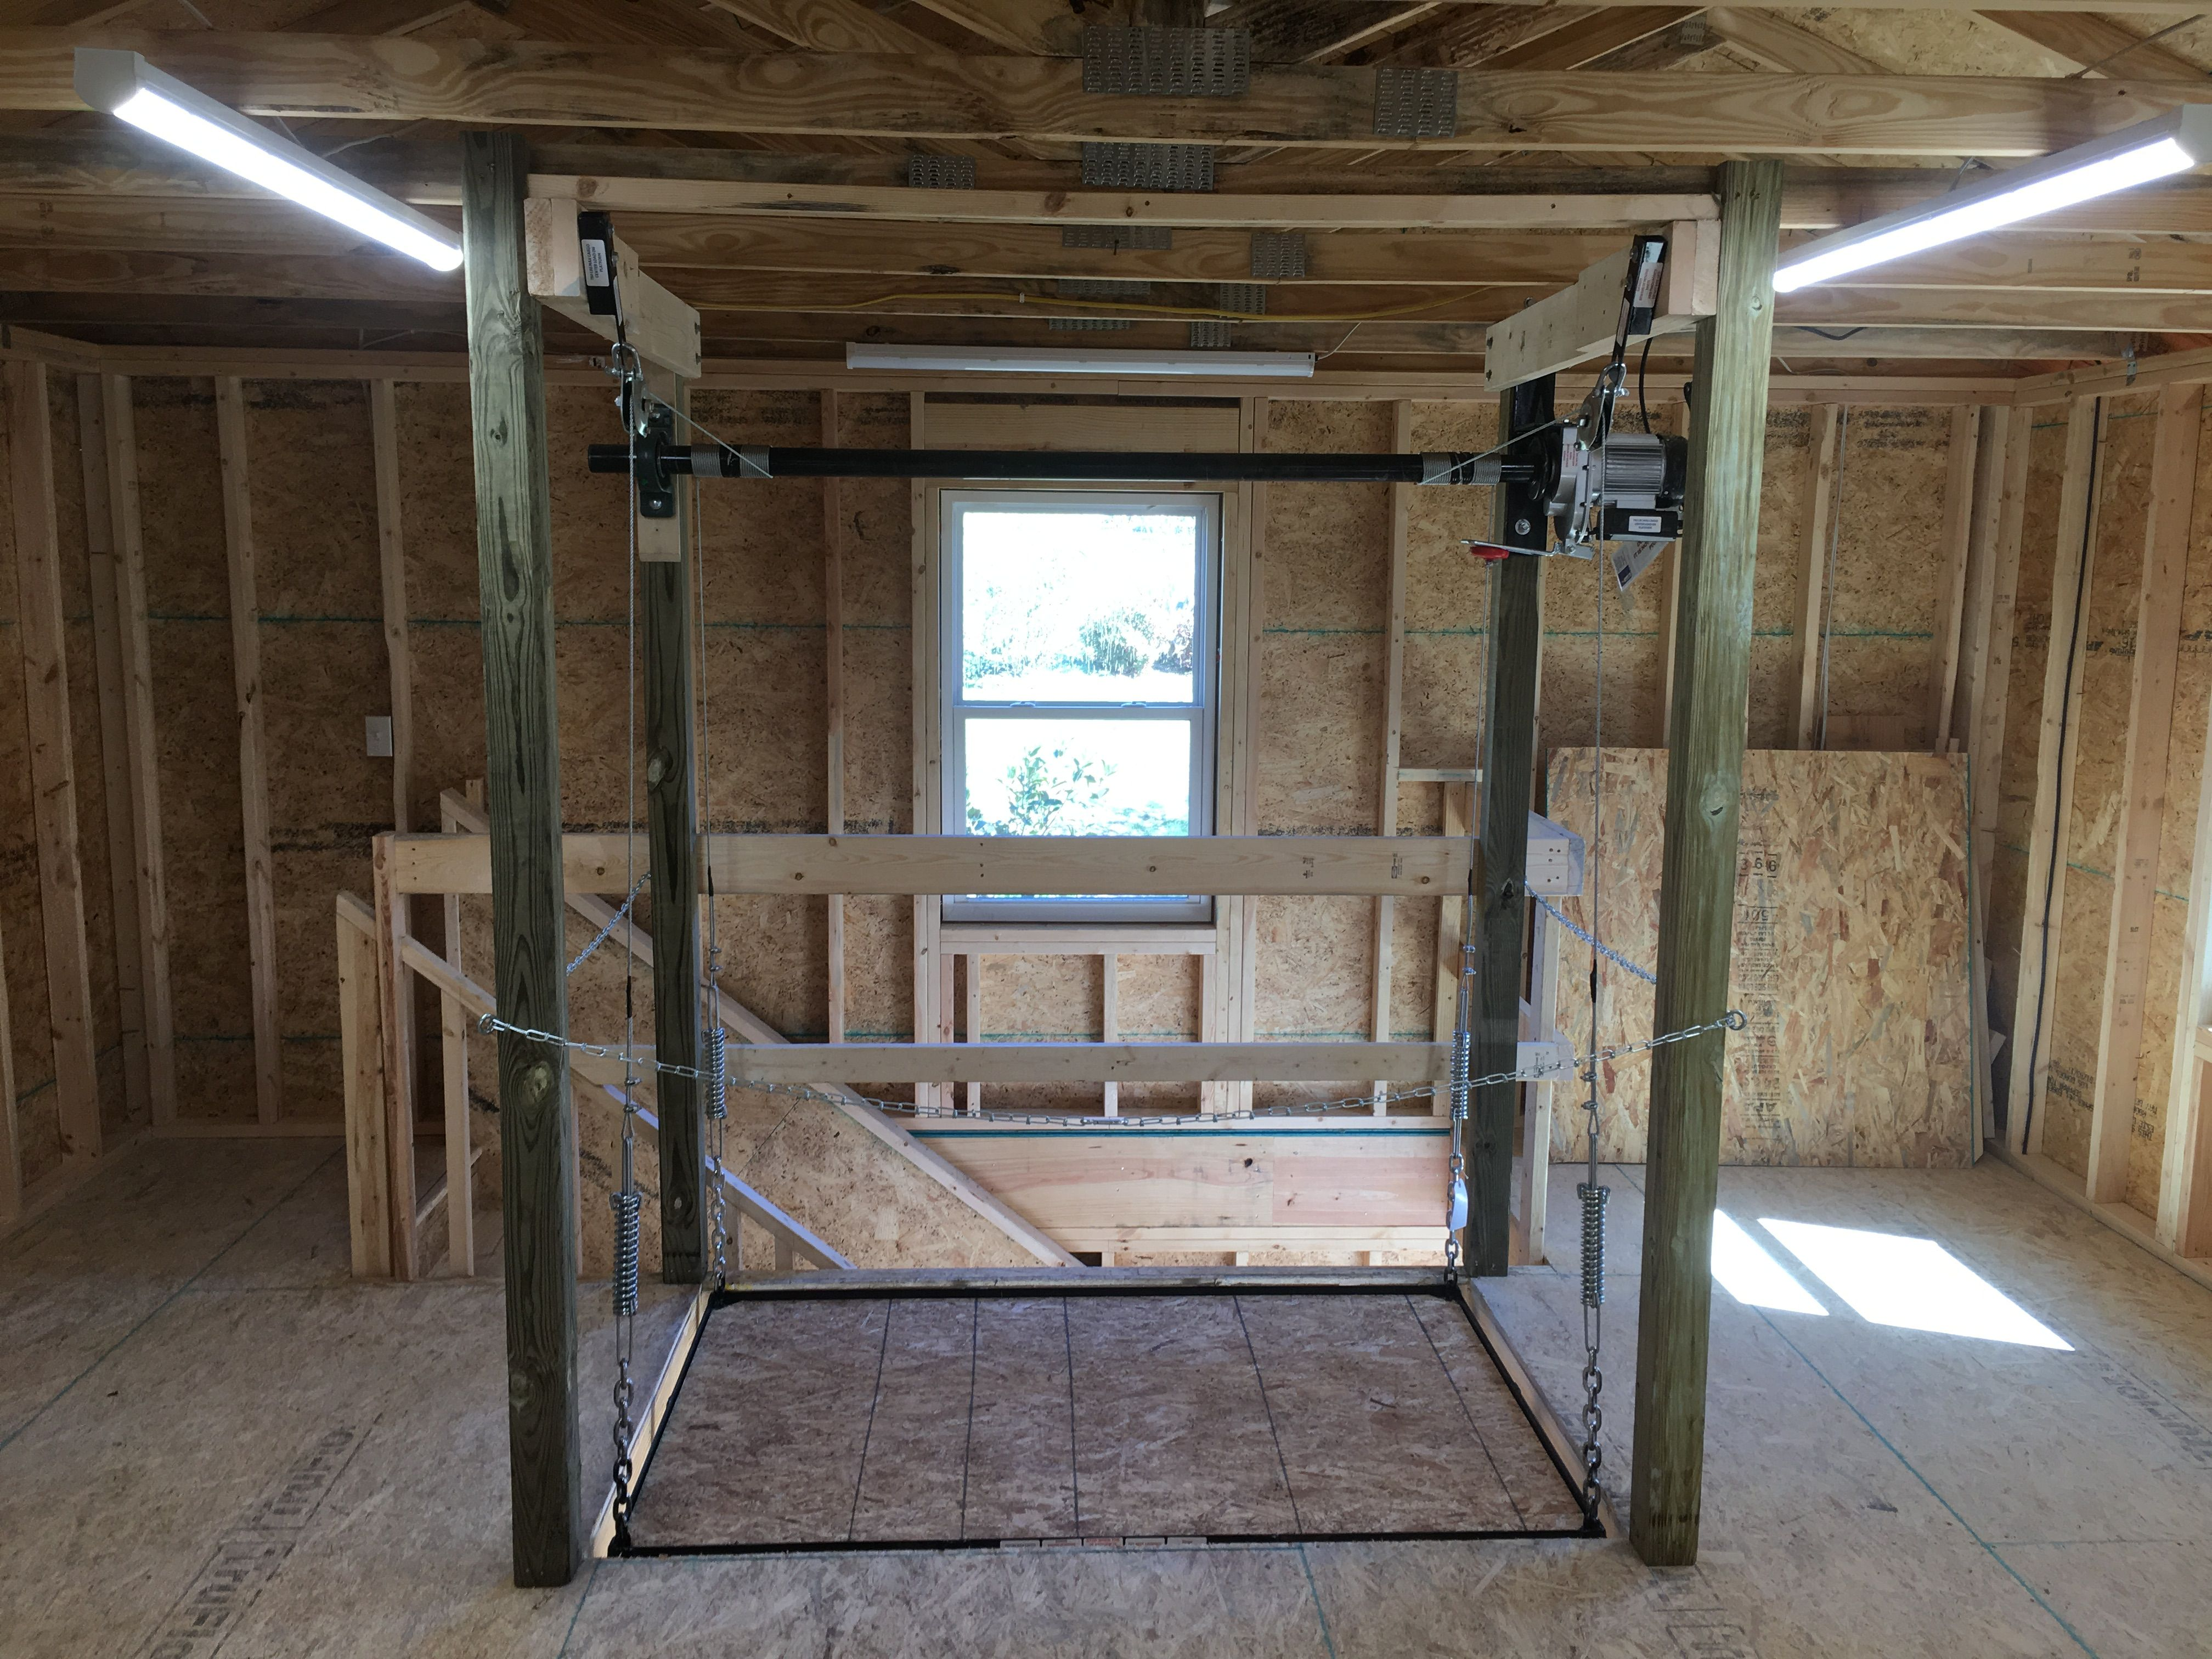 The Attic Lift Is A Garage Lift System That Is Motorized Designed To Safely Move Items Up And Down Without Going Up The Atti Attic Lift Garage Lift Attic Rooms